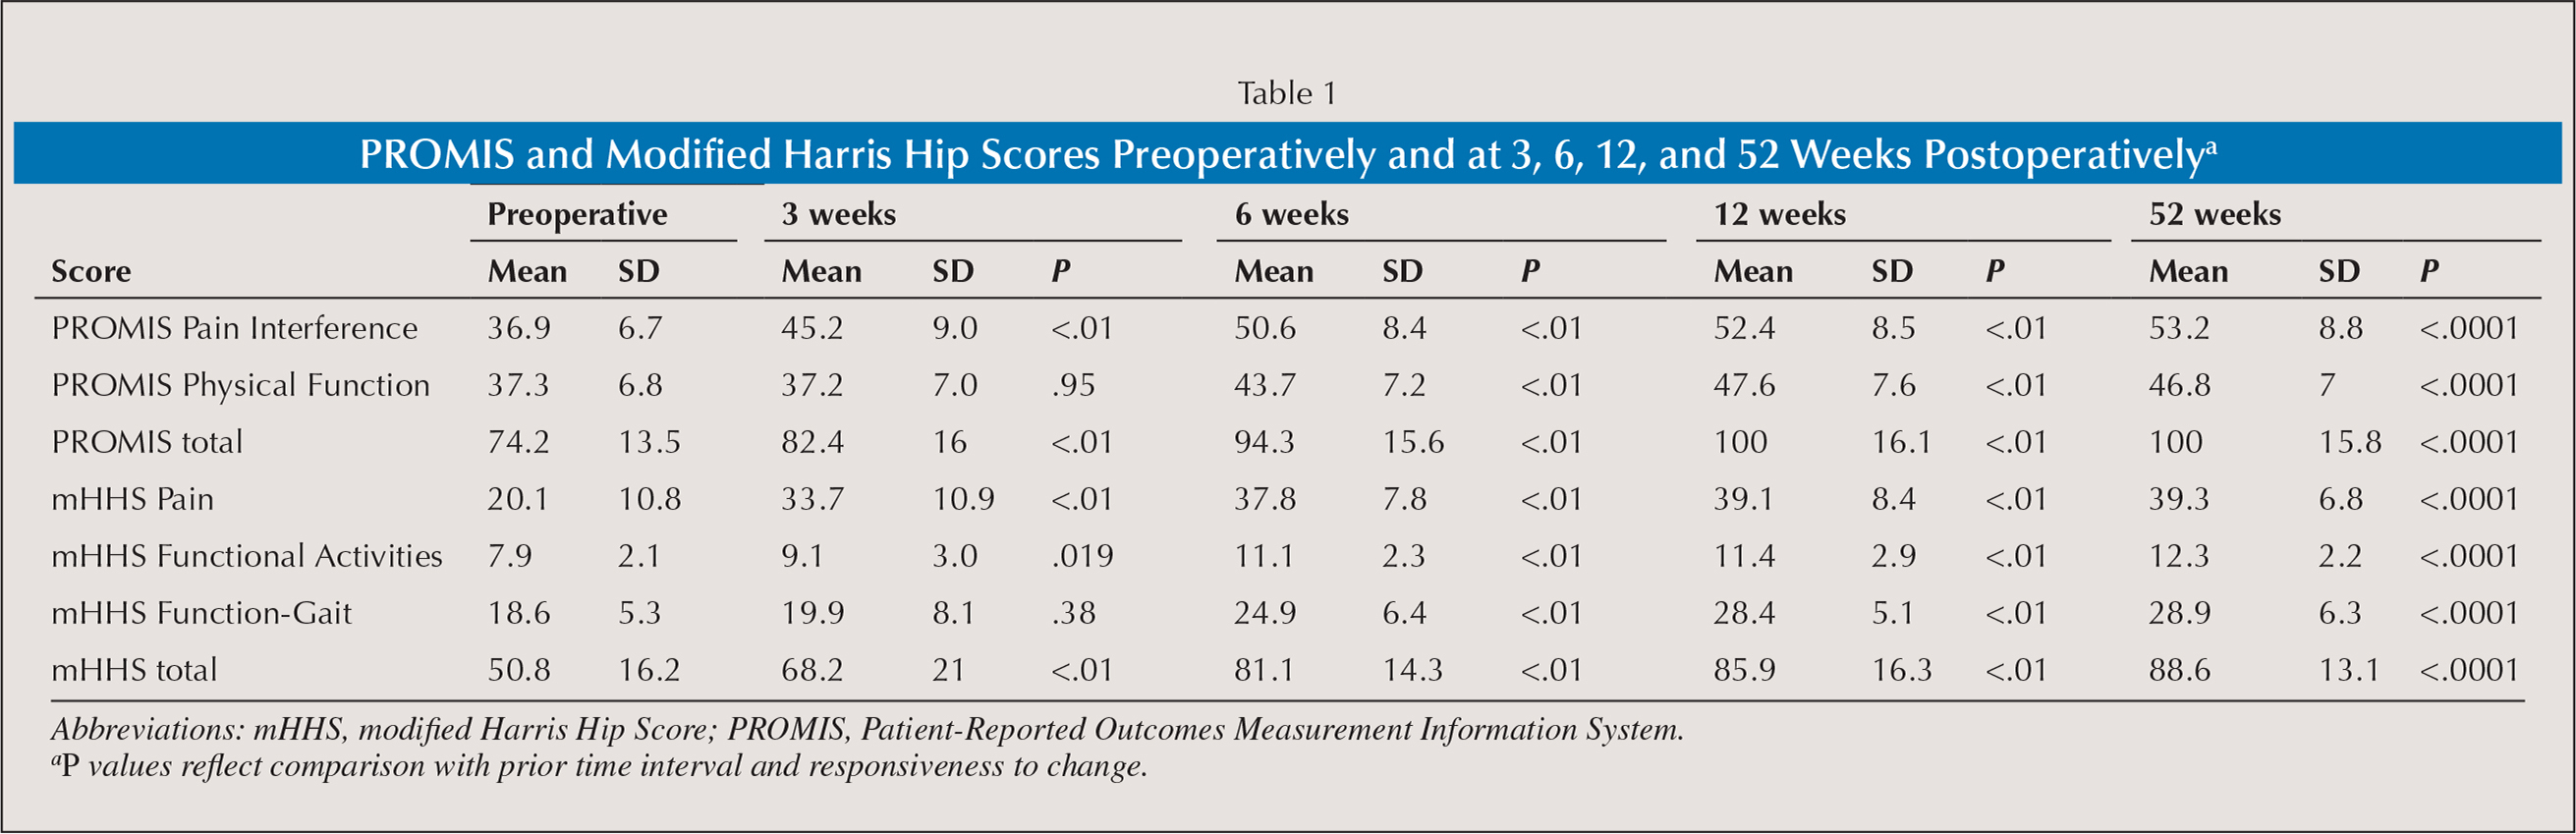 PROMIS and Modified Harris Hip Scores Preoperatively and at 3, 6, 12, and 52 Weeks Postoperativelya